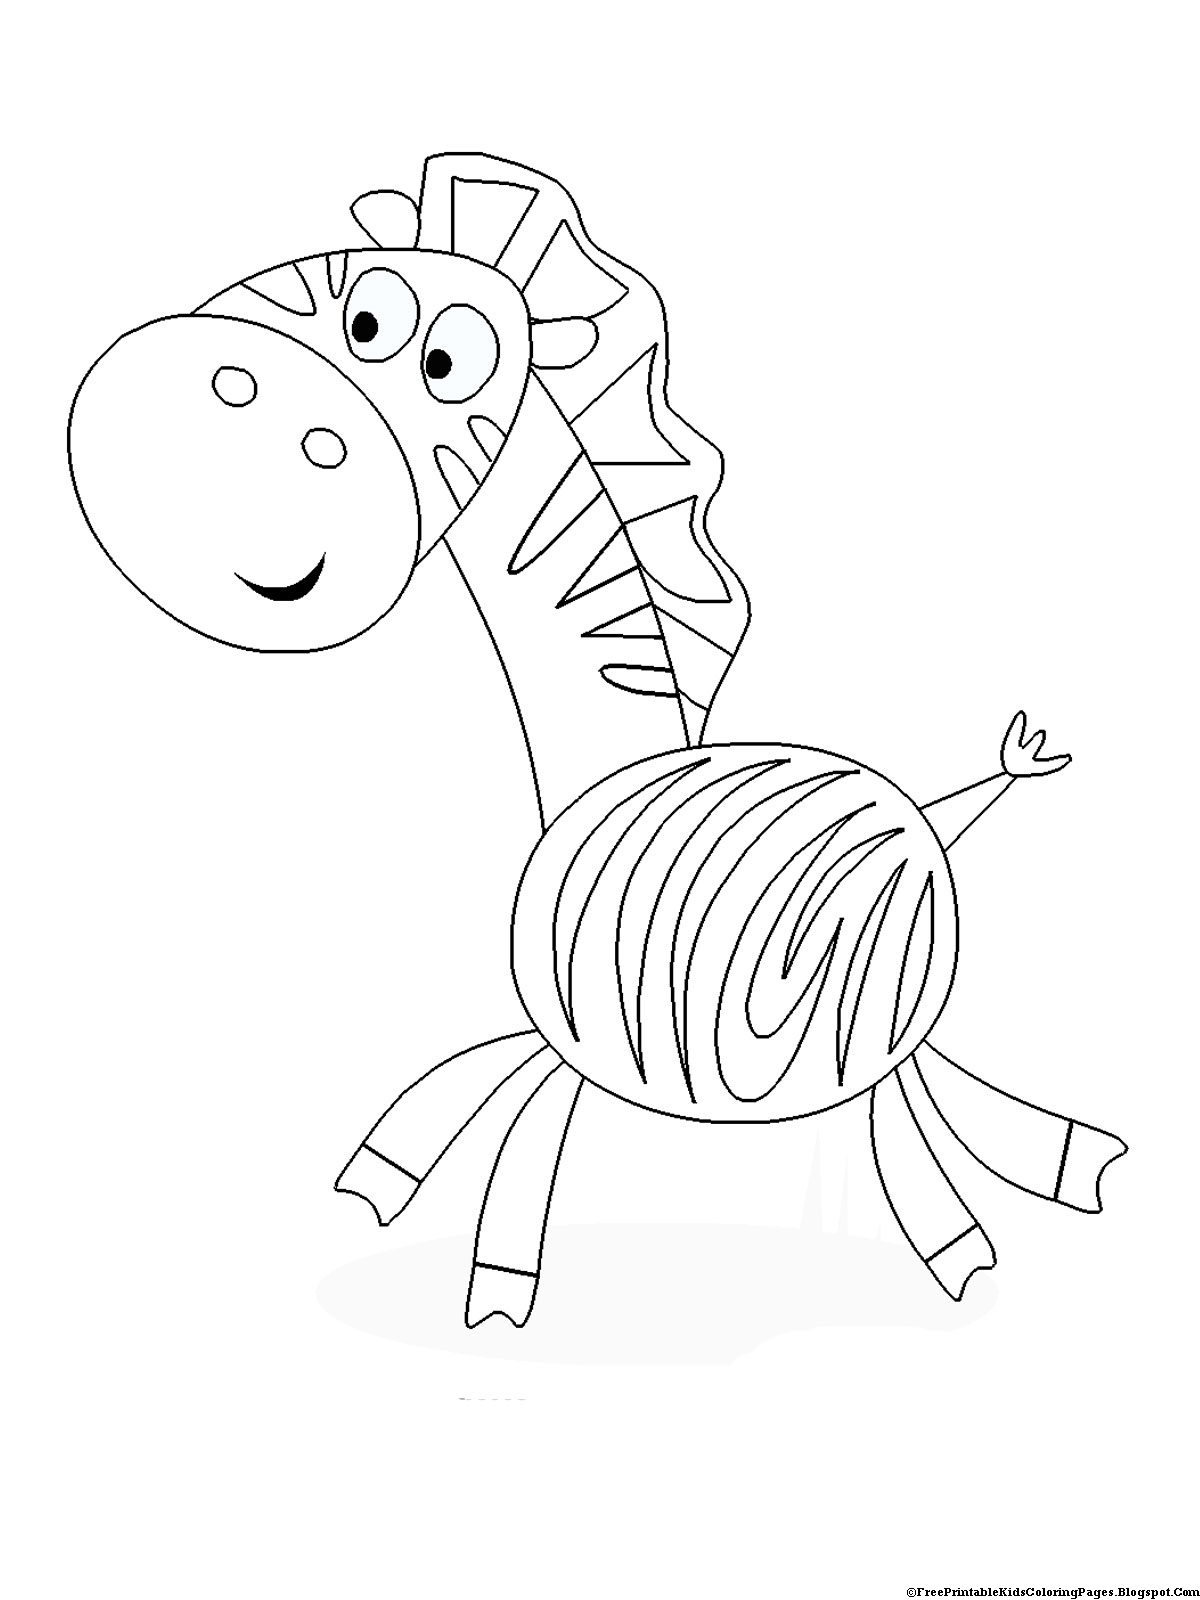 coloring zebra pictures cartoon zebra coloring page free printable coloring pages pictures coloring zebra